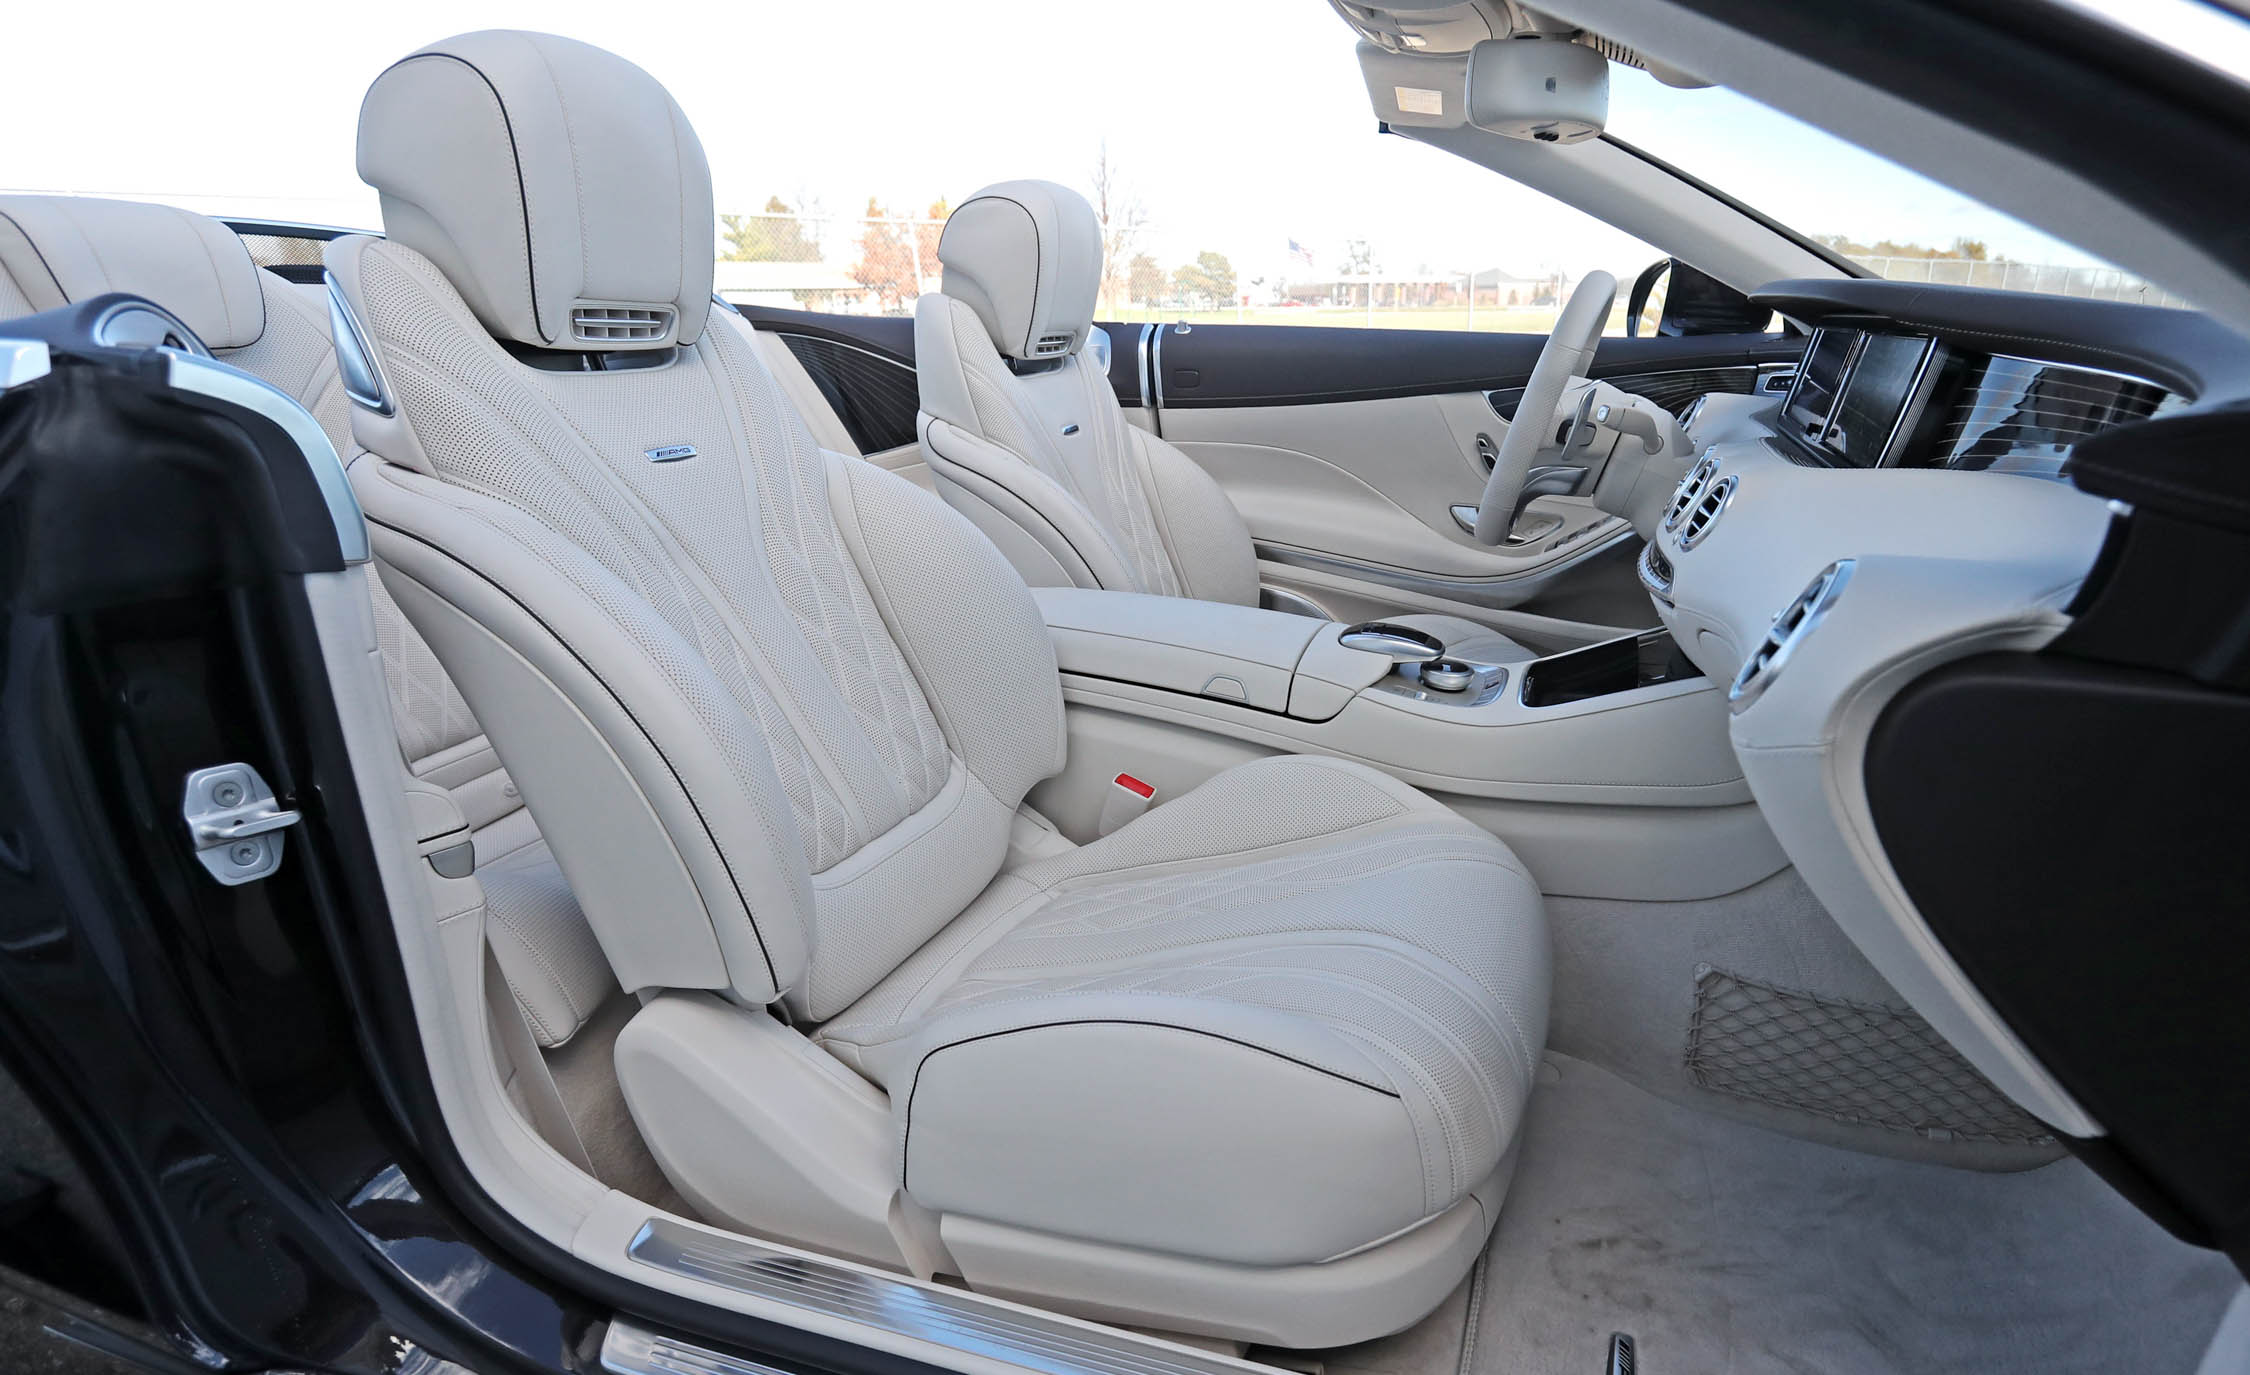 2017 Mercedes Amg S63 Cabriolet Interior Seats Front (Photo 17 of 38)